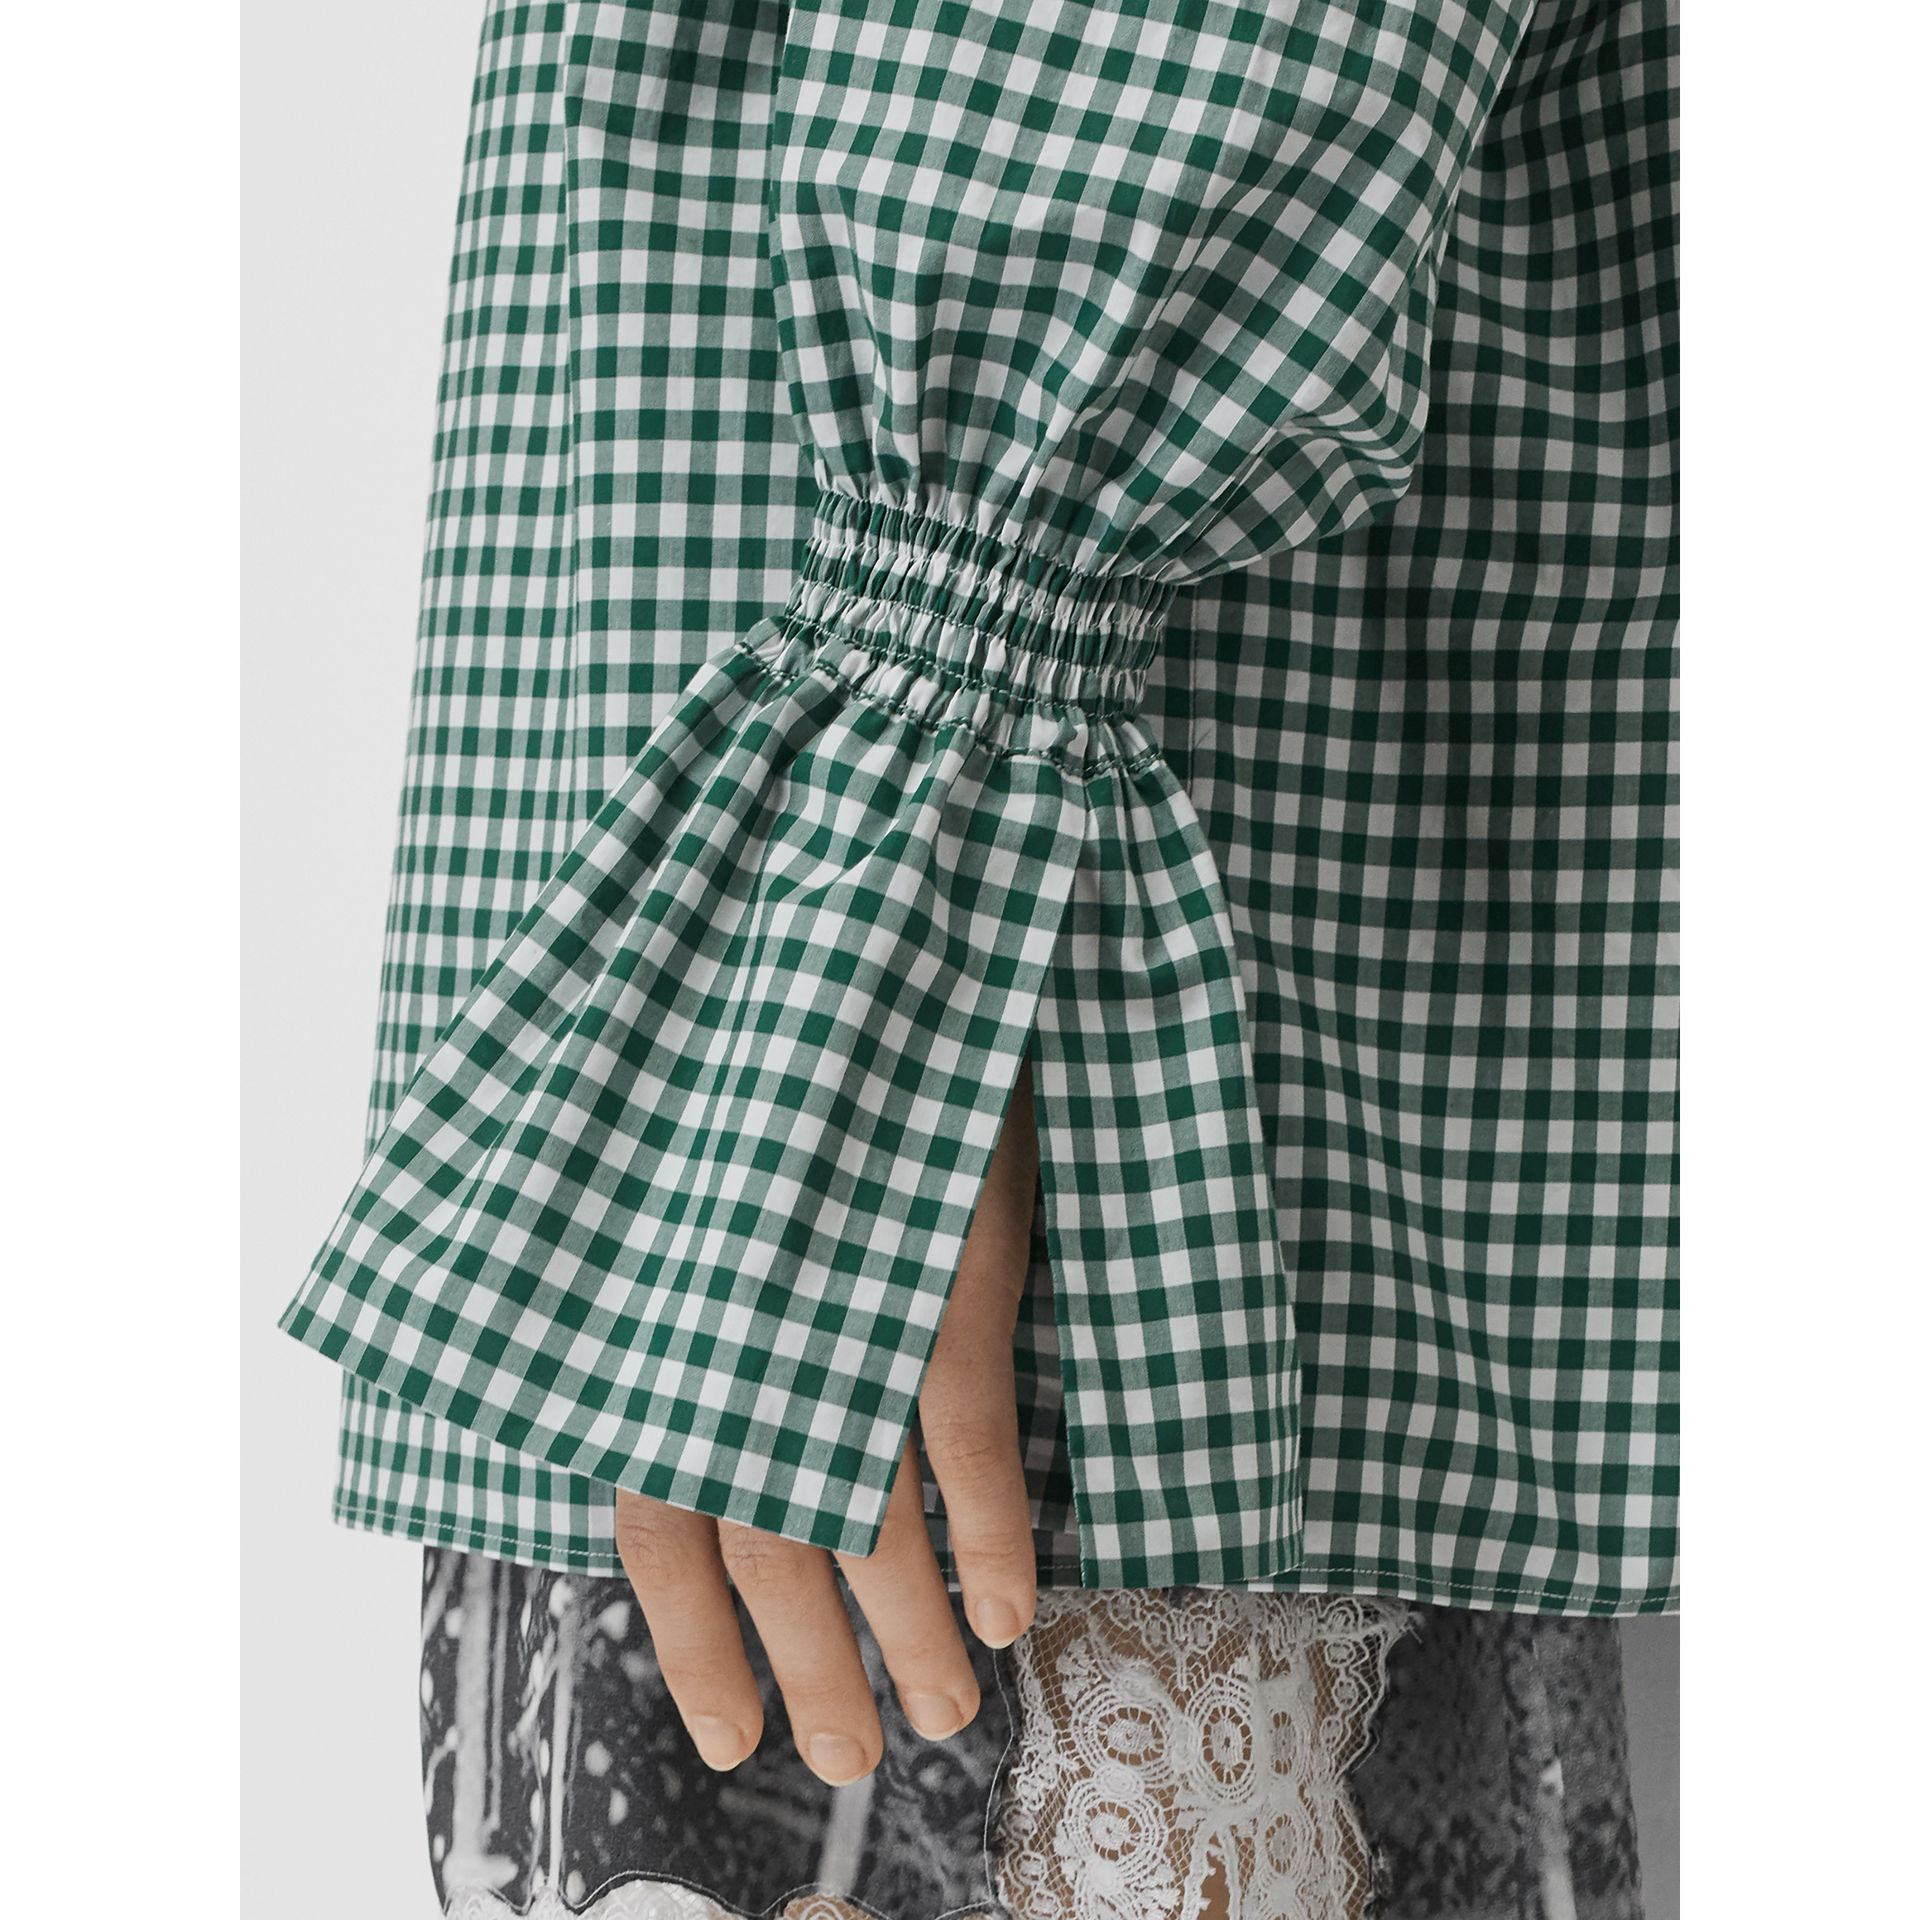 Puff-sleeve Gingham Cotton Shirt in White/green - Women | Burberry Singapore - gallery image 1